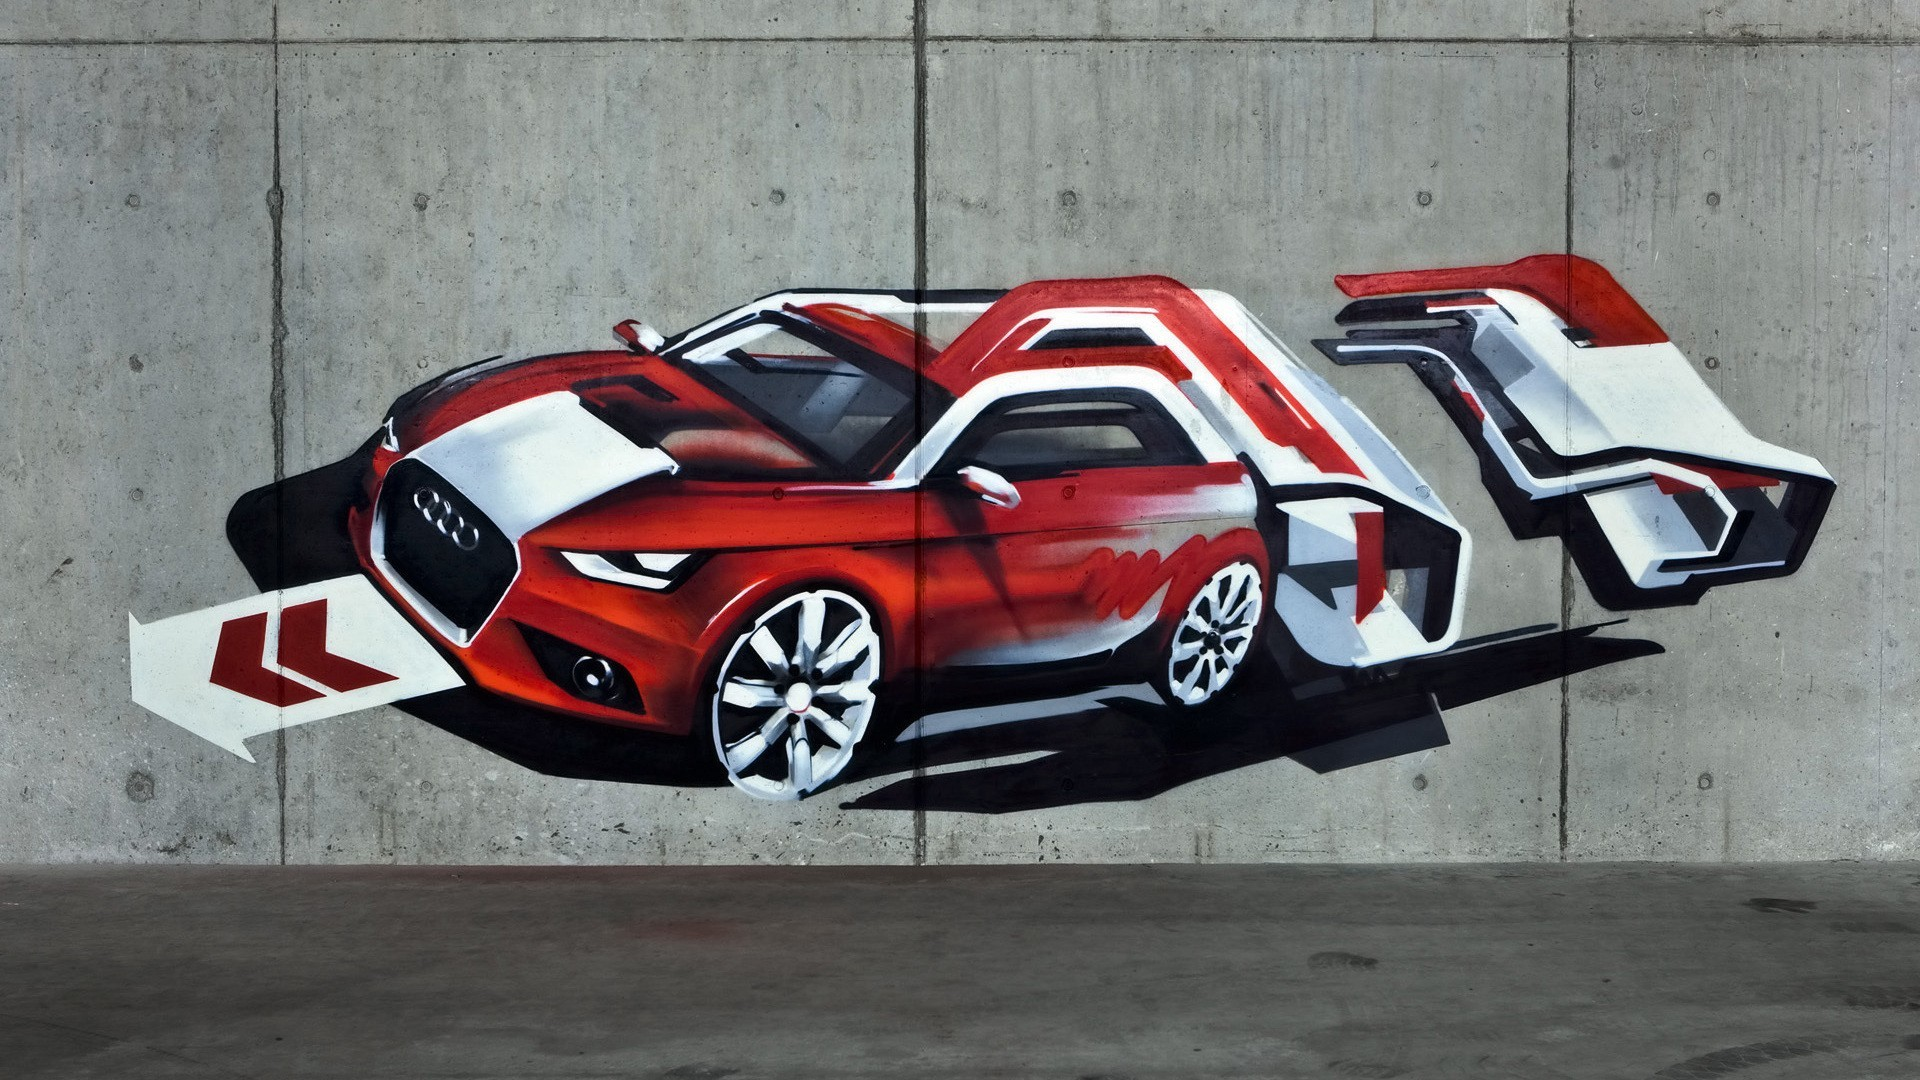 wall cars graffiti HD Wallpaper